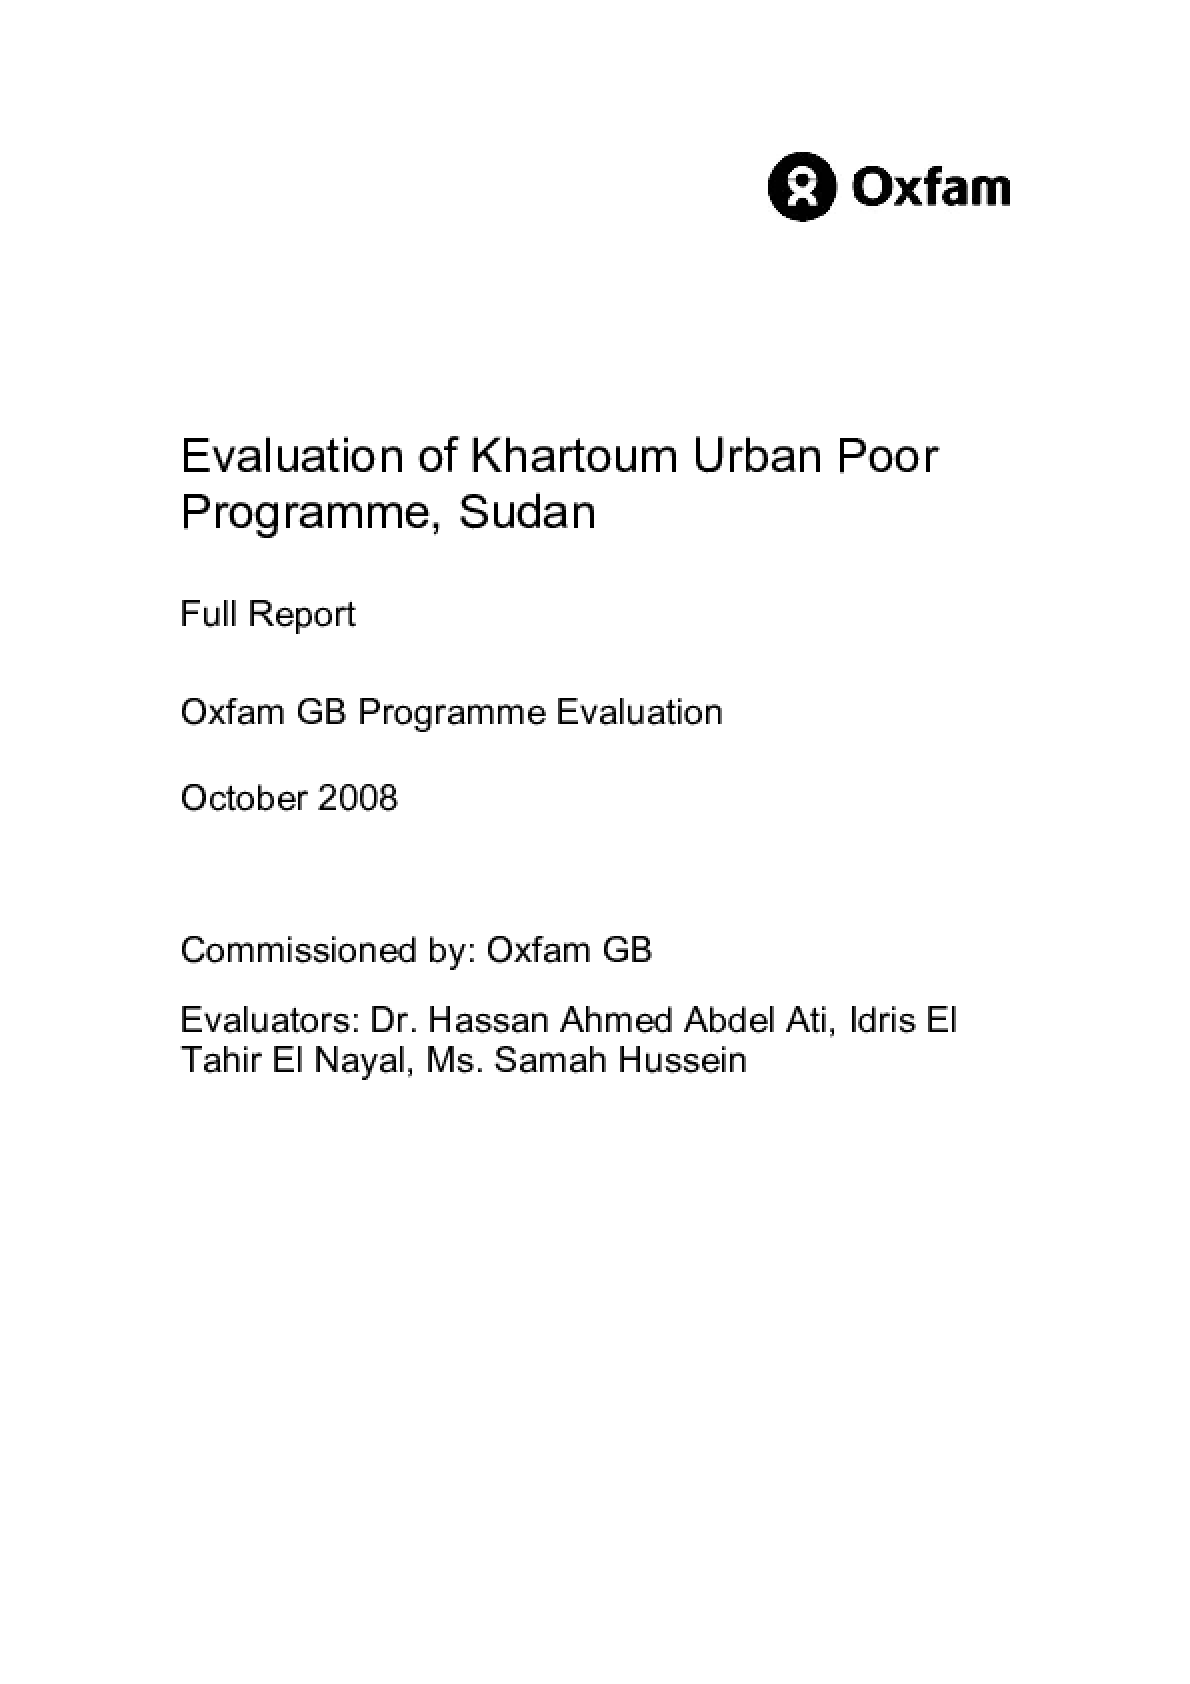 Evaluation of Khartoum Urban Poor Programme, Sudan